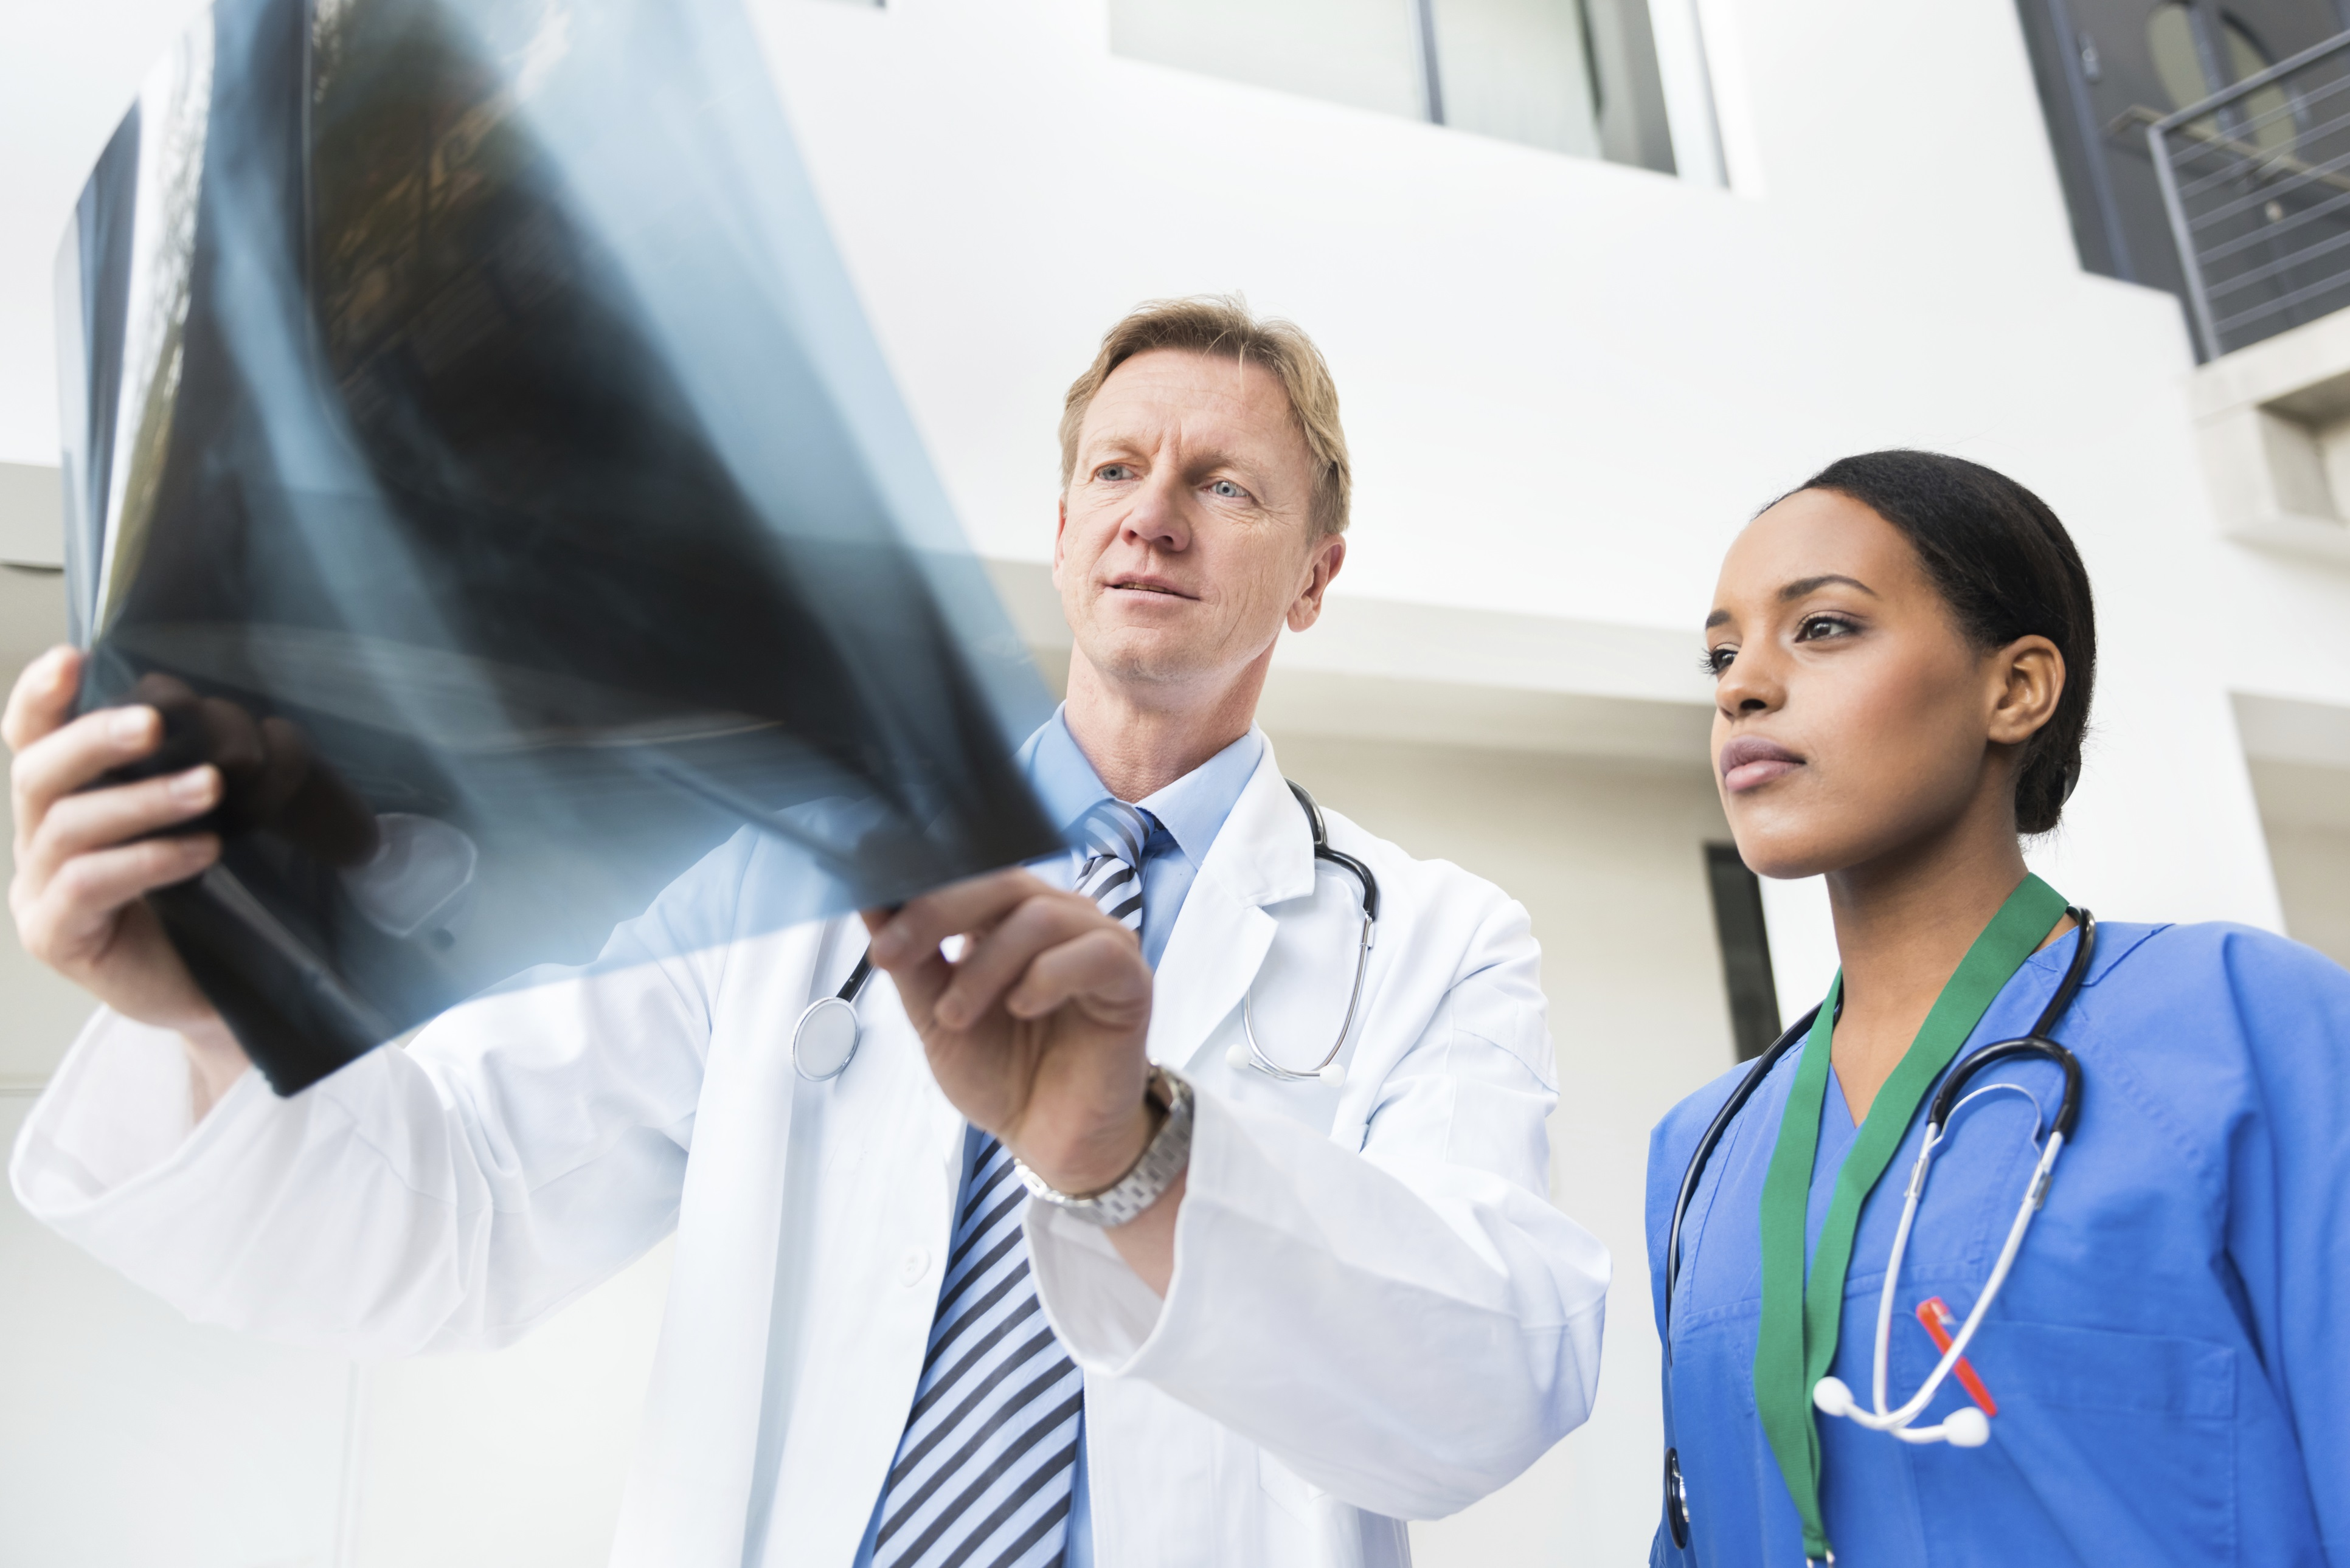 Physician Assistants Graduate To A Healthy Job Market